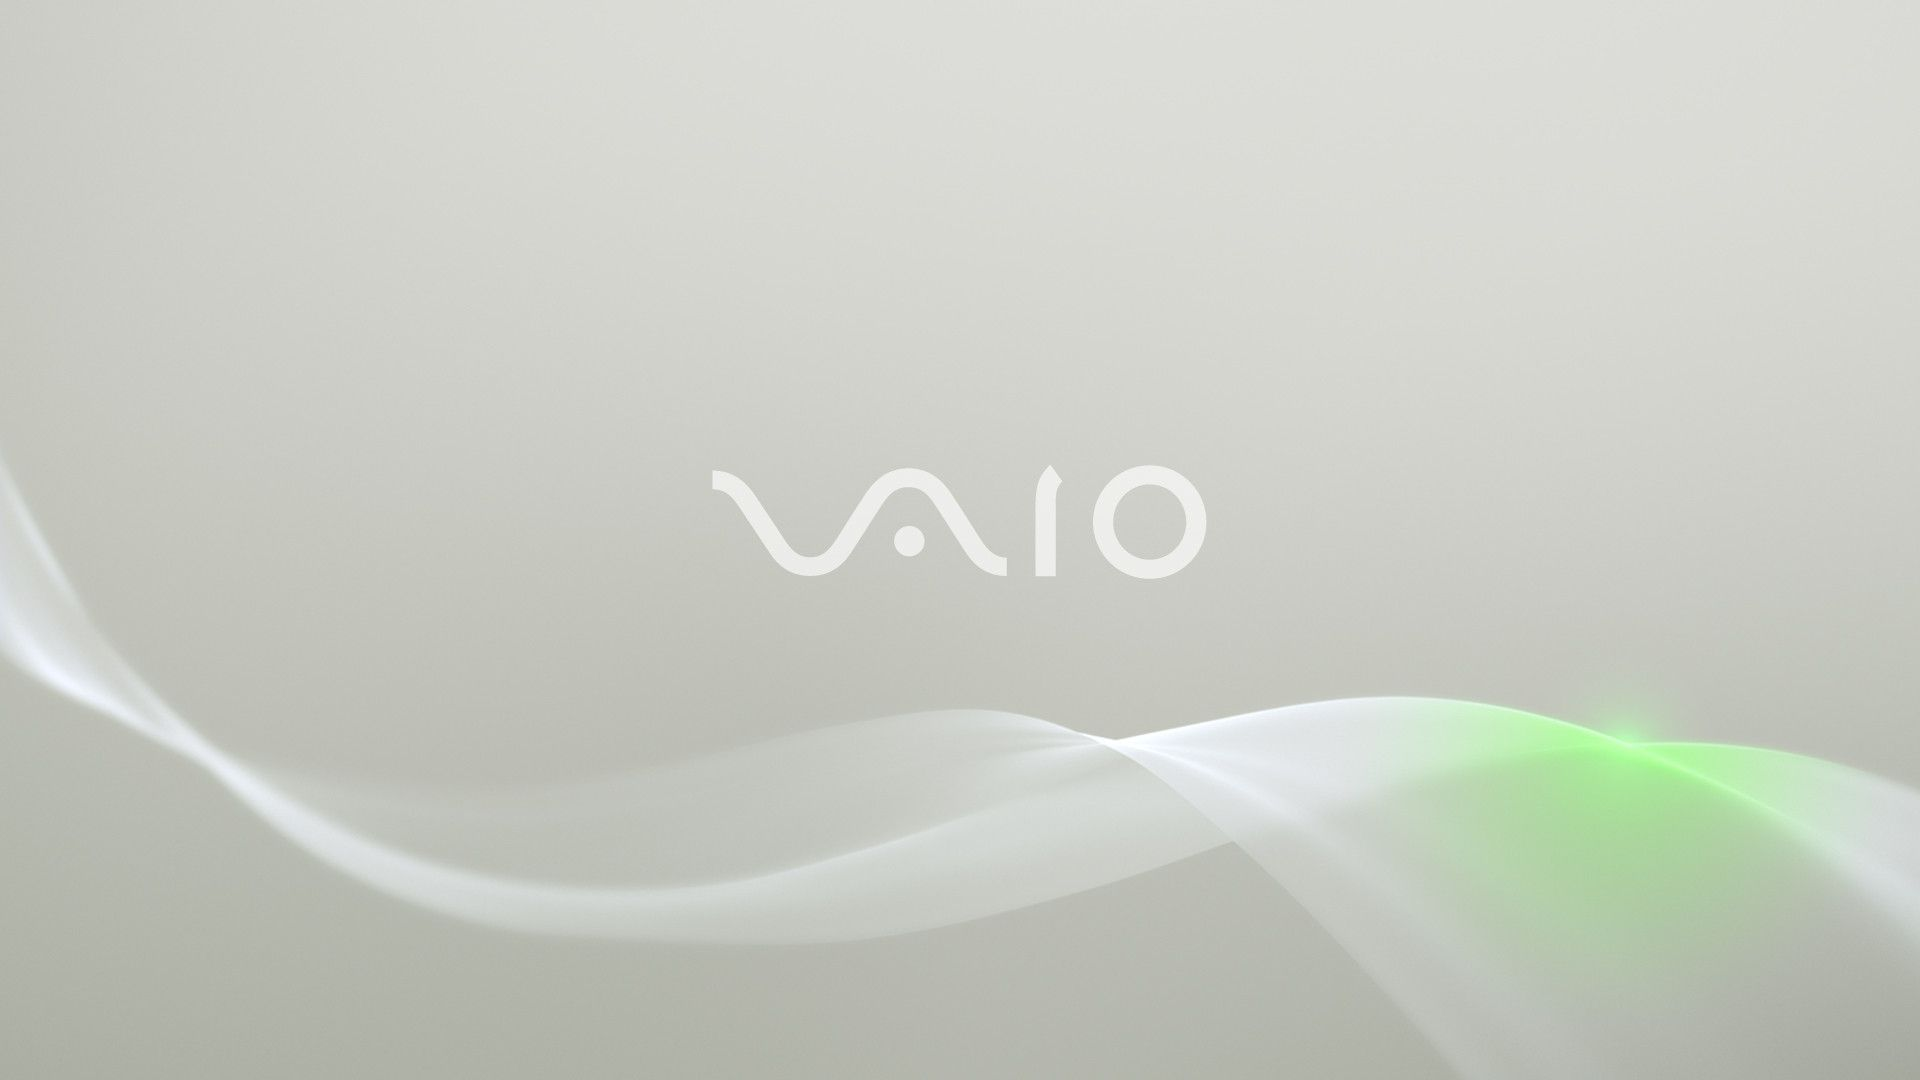 brilliant wallpapers for sony vaio computer wallpapers for